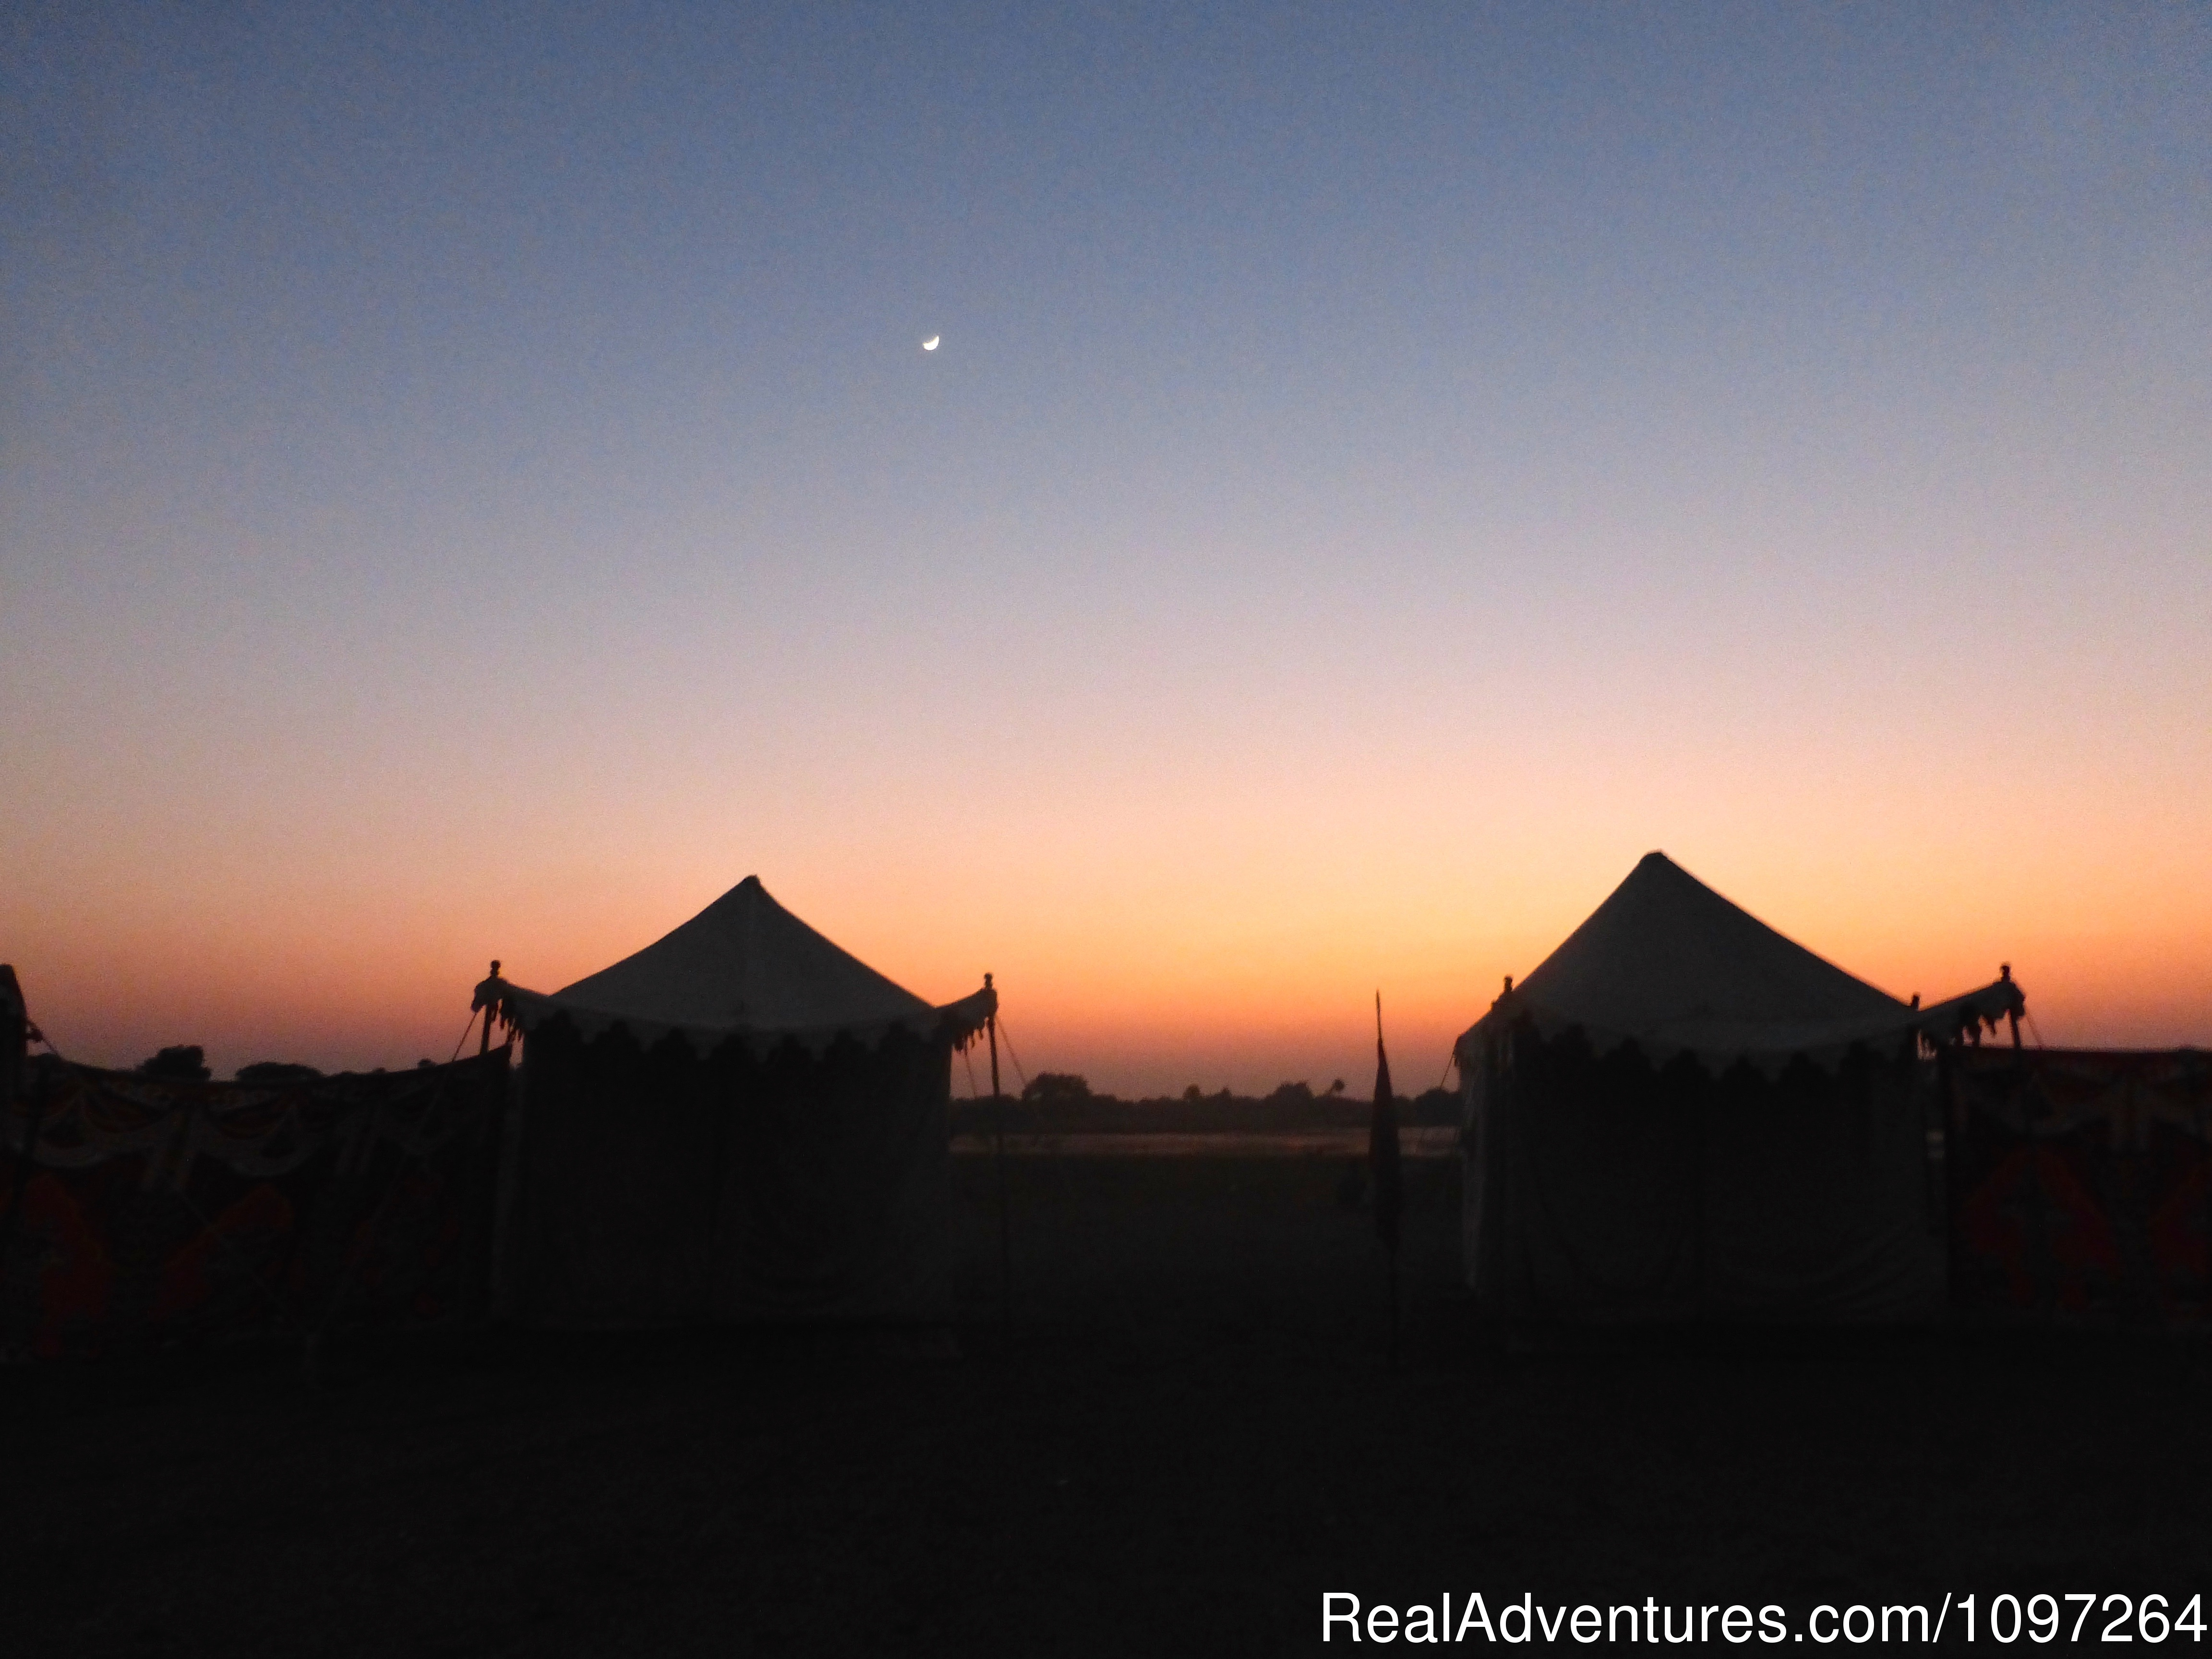 Nightfall in our safari camp